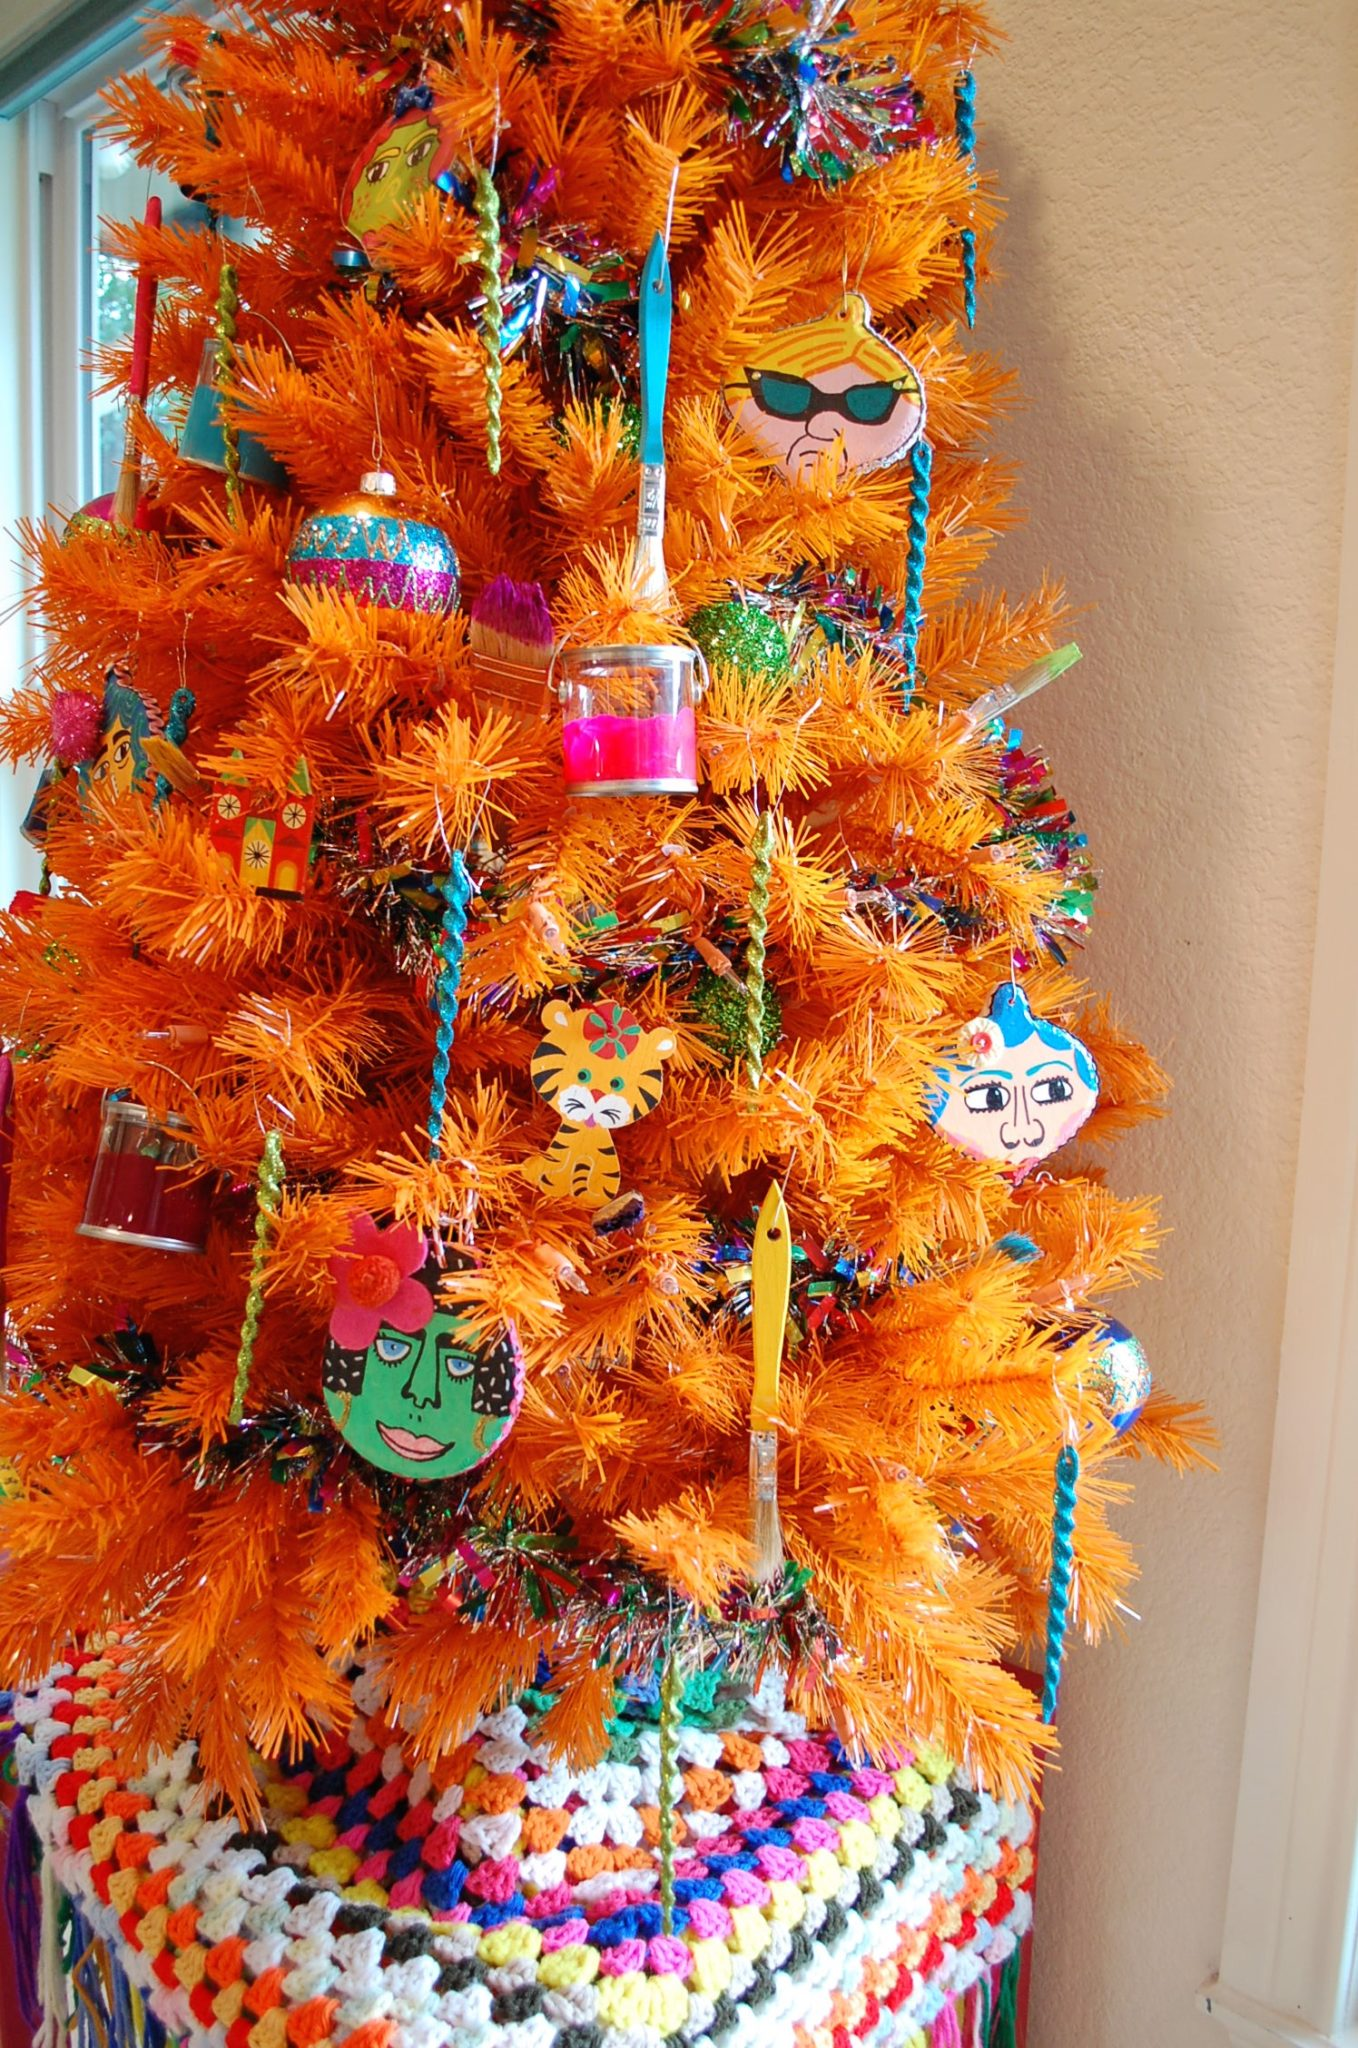 How to decorate an arts and crafts inspired tree.